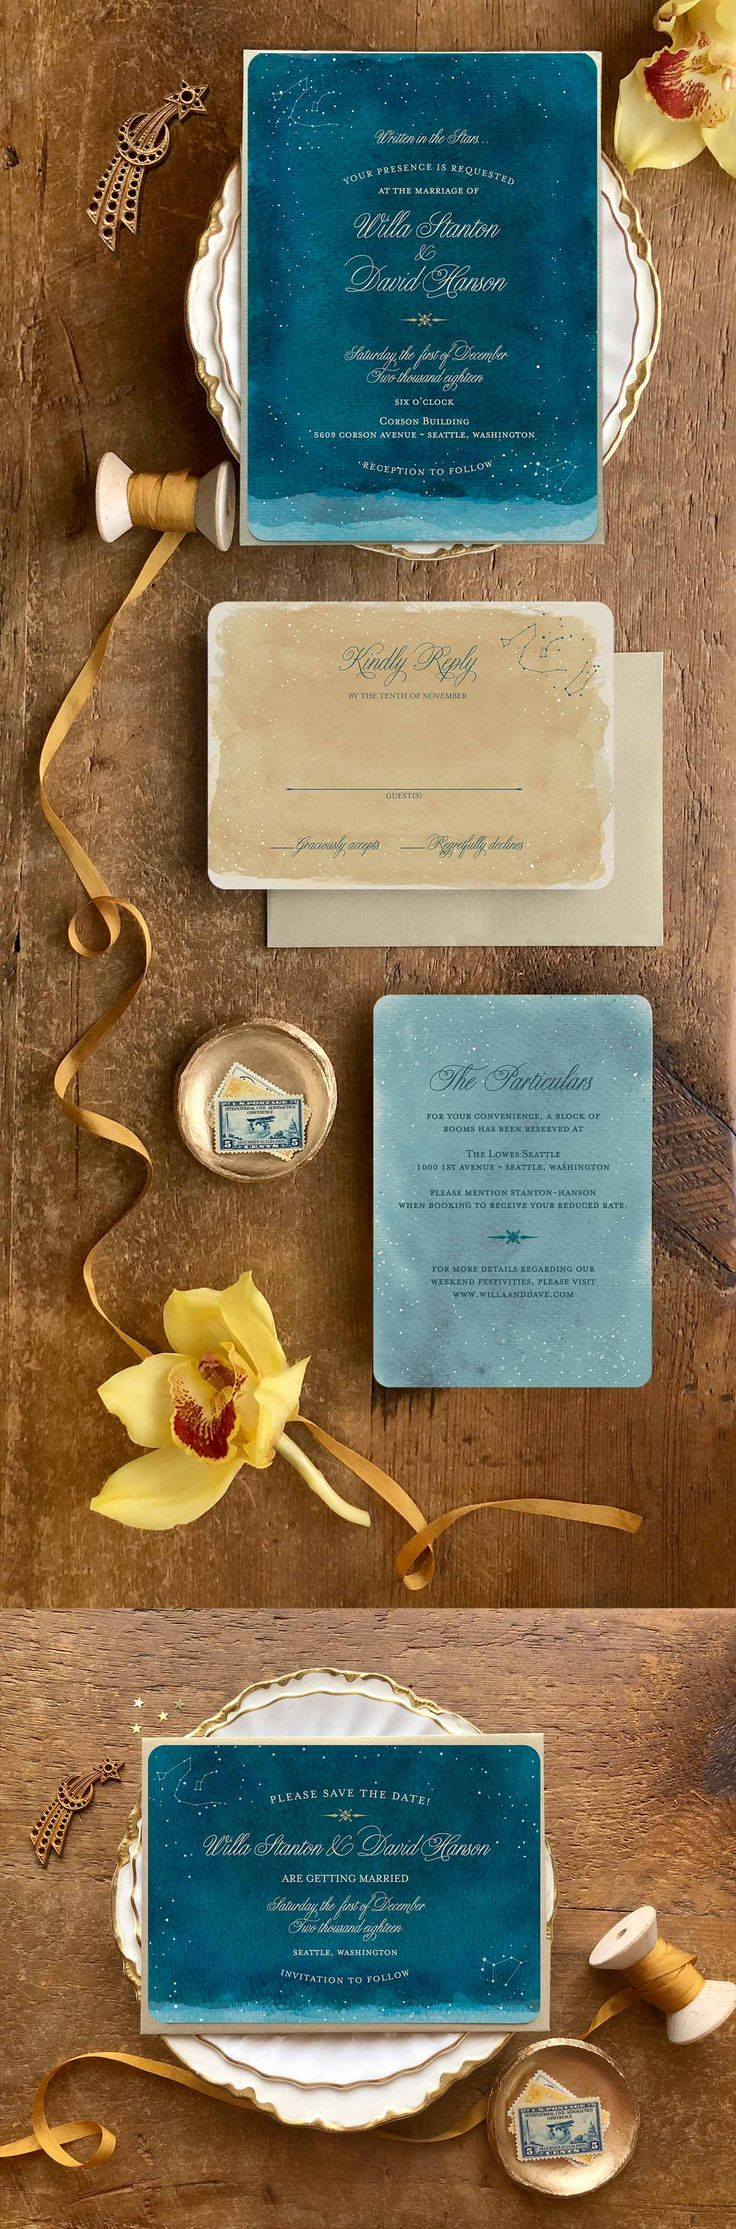 13 Best Wedding Invitation Trends Images By Gogosnap Vintage Wedding